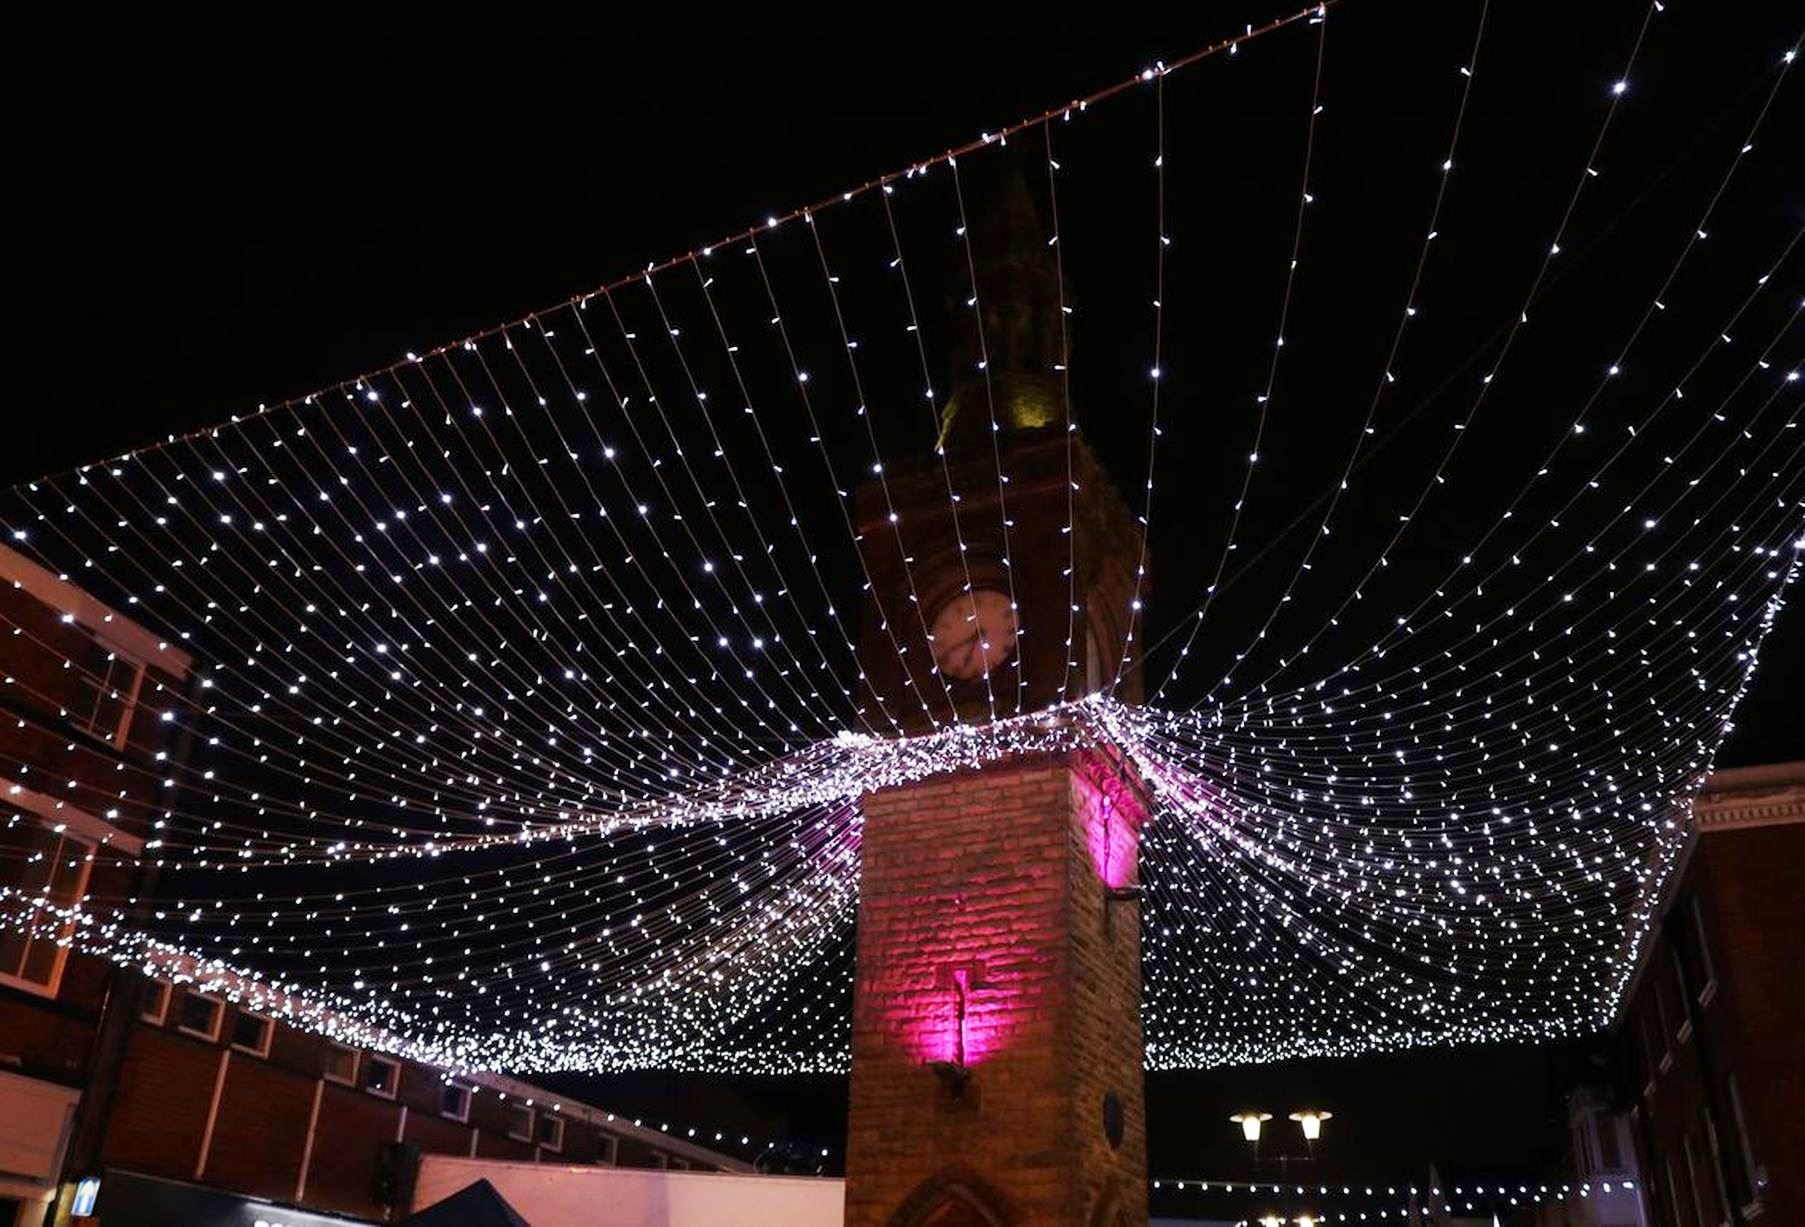 LIGHTING UP THE TOWN CENTRE FOR CHRISTMAS